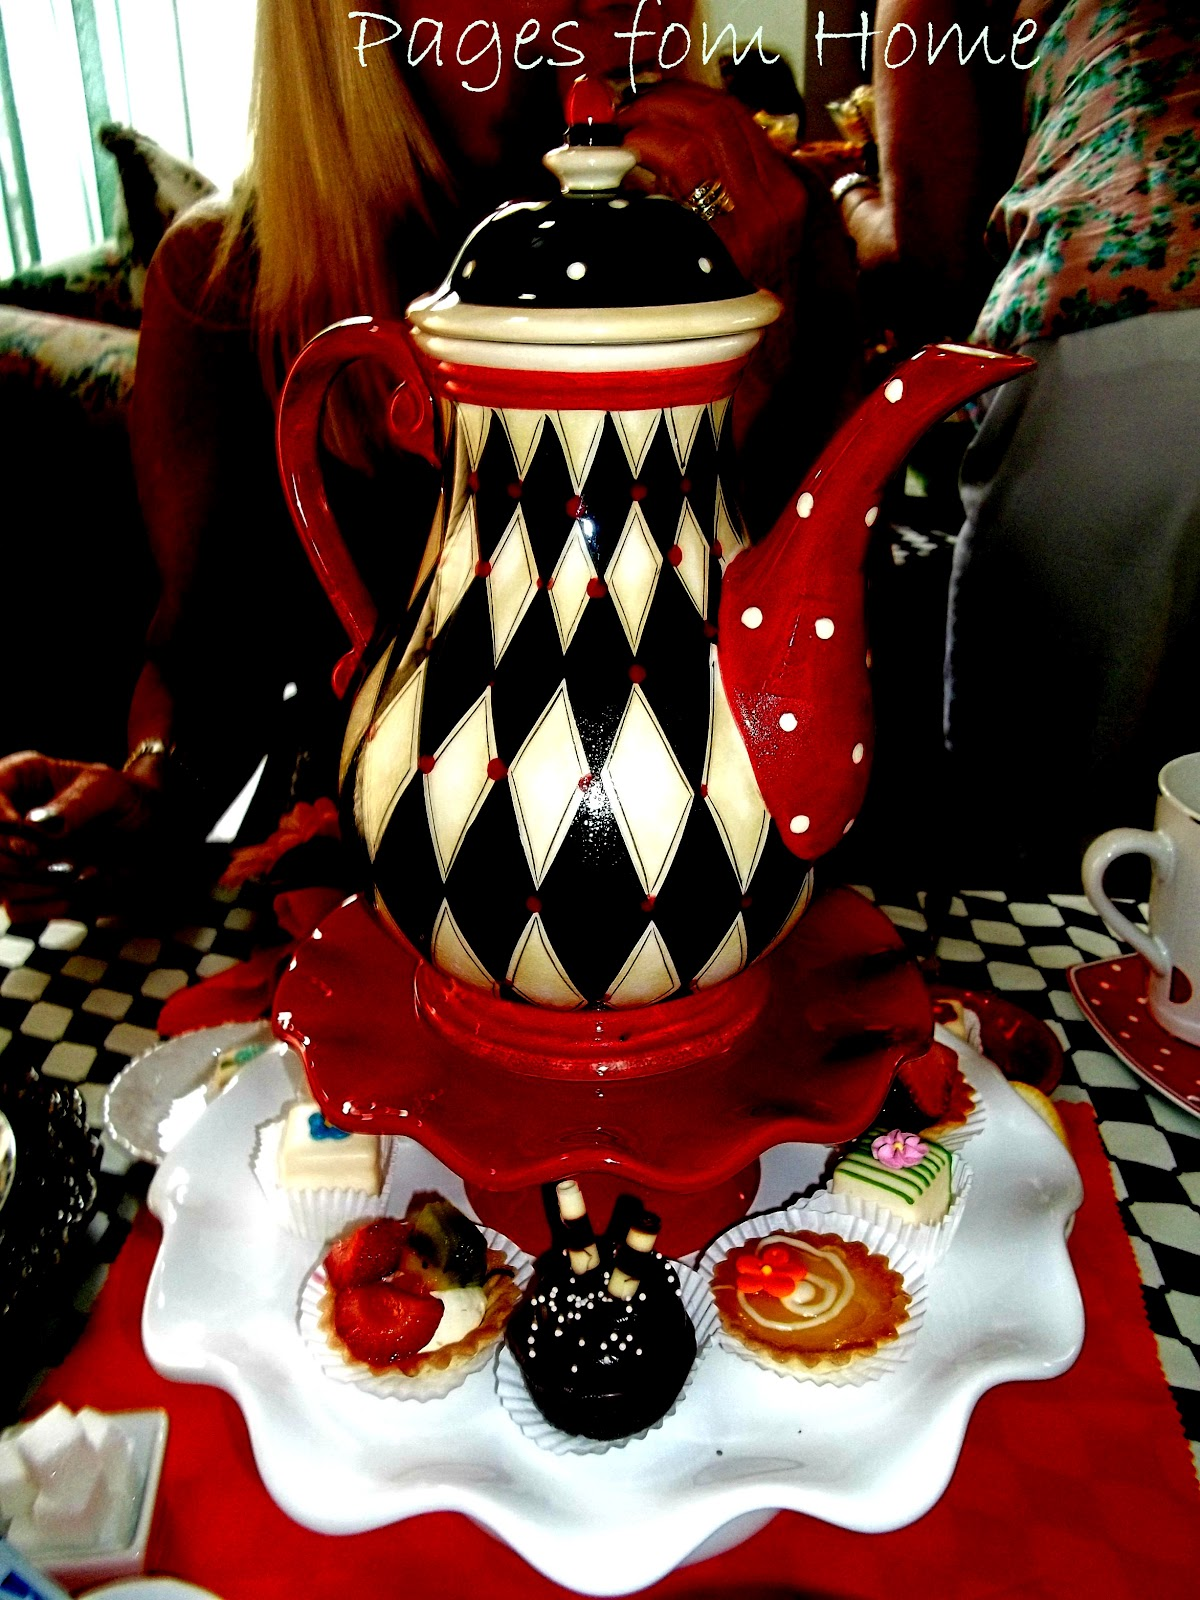 pages from home: mad hatter alice in wonderland bridal shower tea